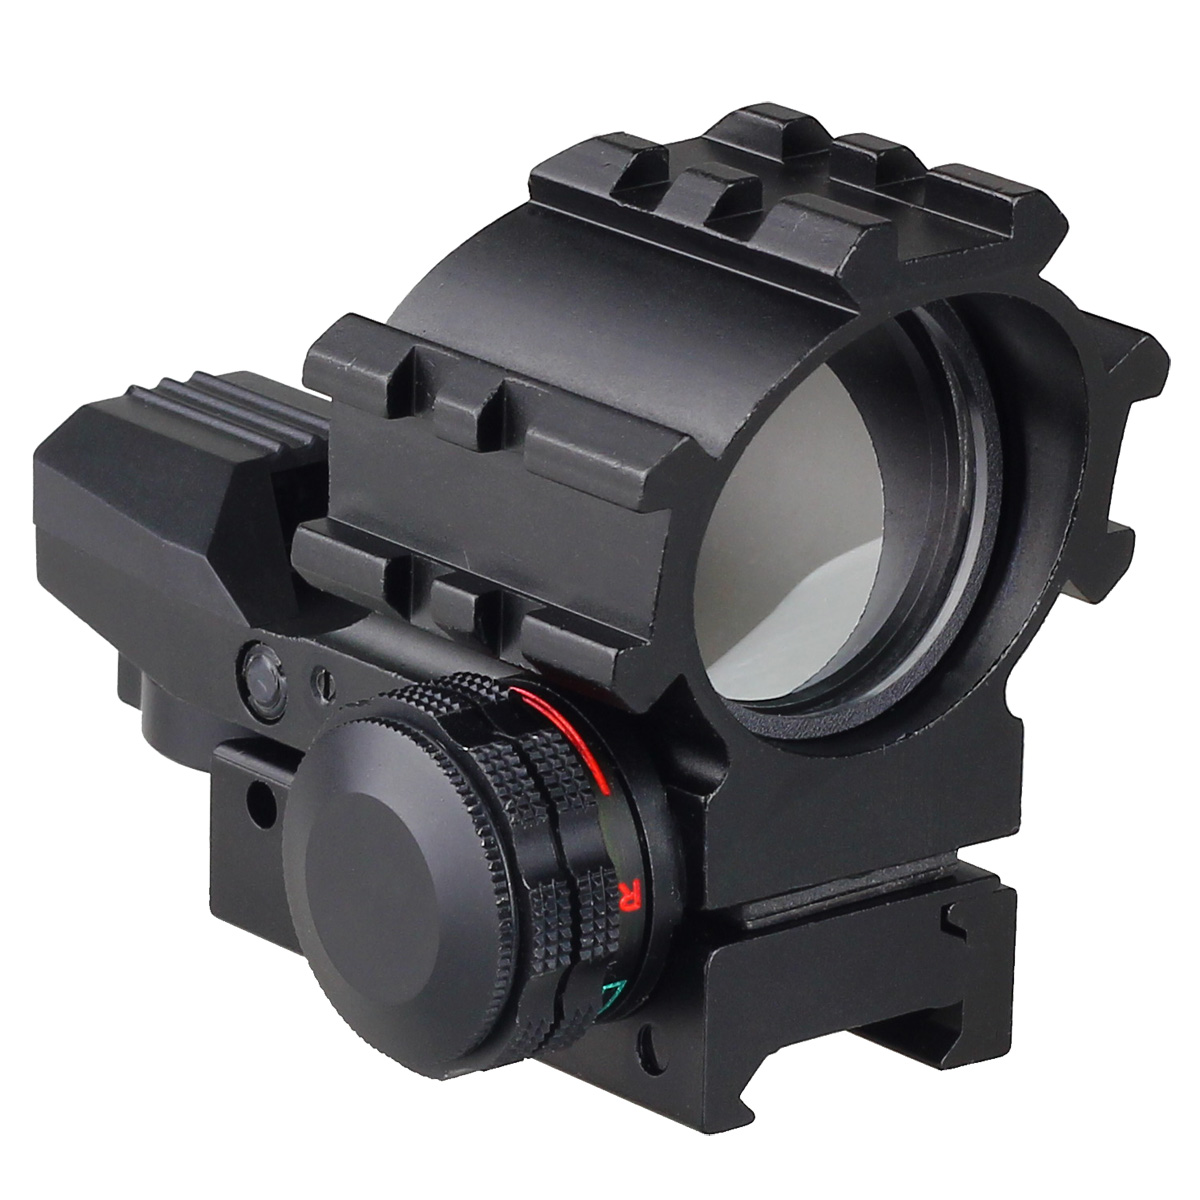 Tactical Holographic 4 Reticles Projected Red Laser Green Dot Reflex Sight Scope 20mm Picatinny Mount for Hunting Airsoft Guns цена